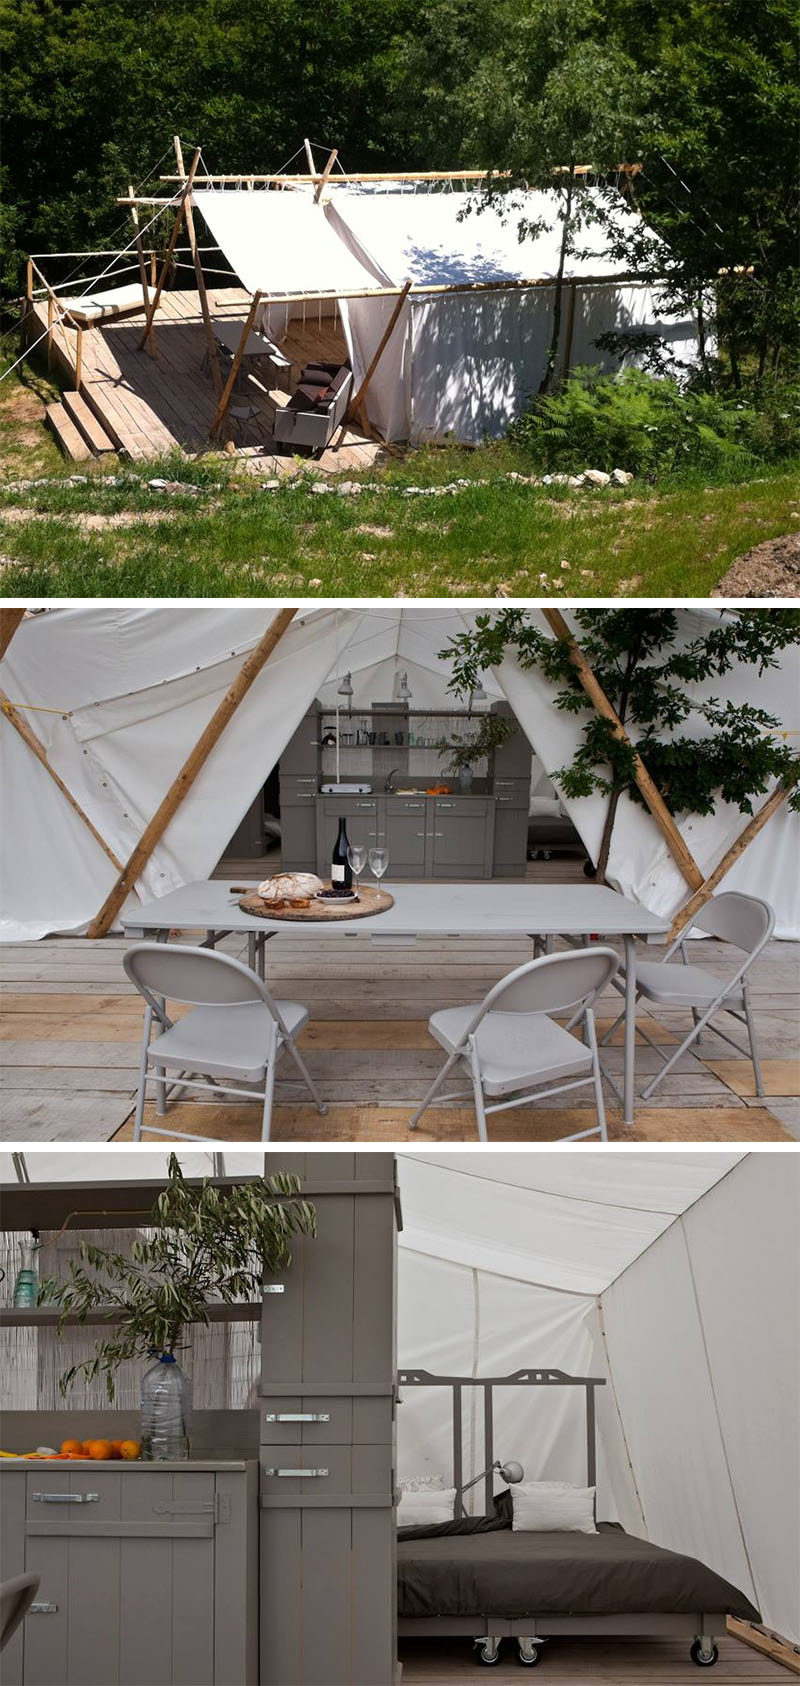 10 Glamping Destinations For People Who Want To Go Camping But Need The Luxuries Of A Hotel // Vinha da Manta - Guarda, Portugal